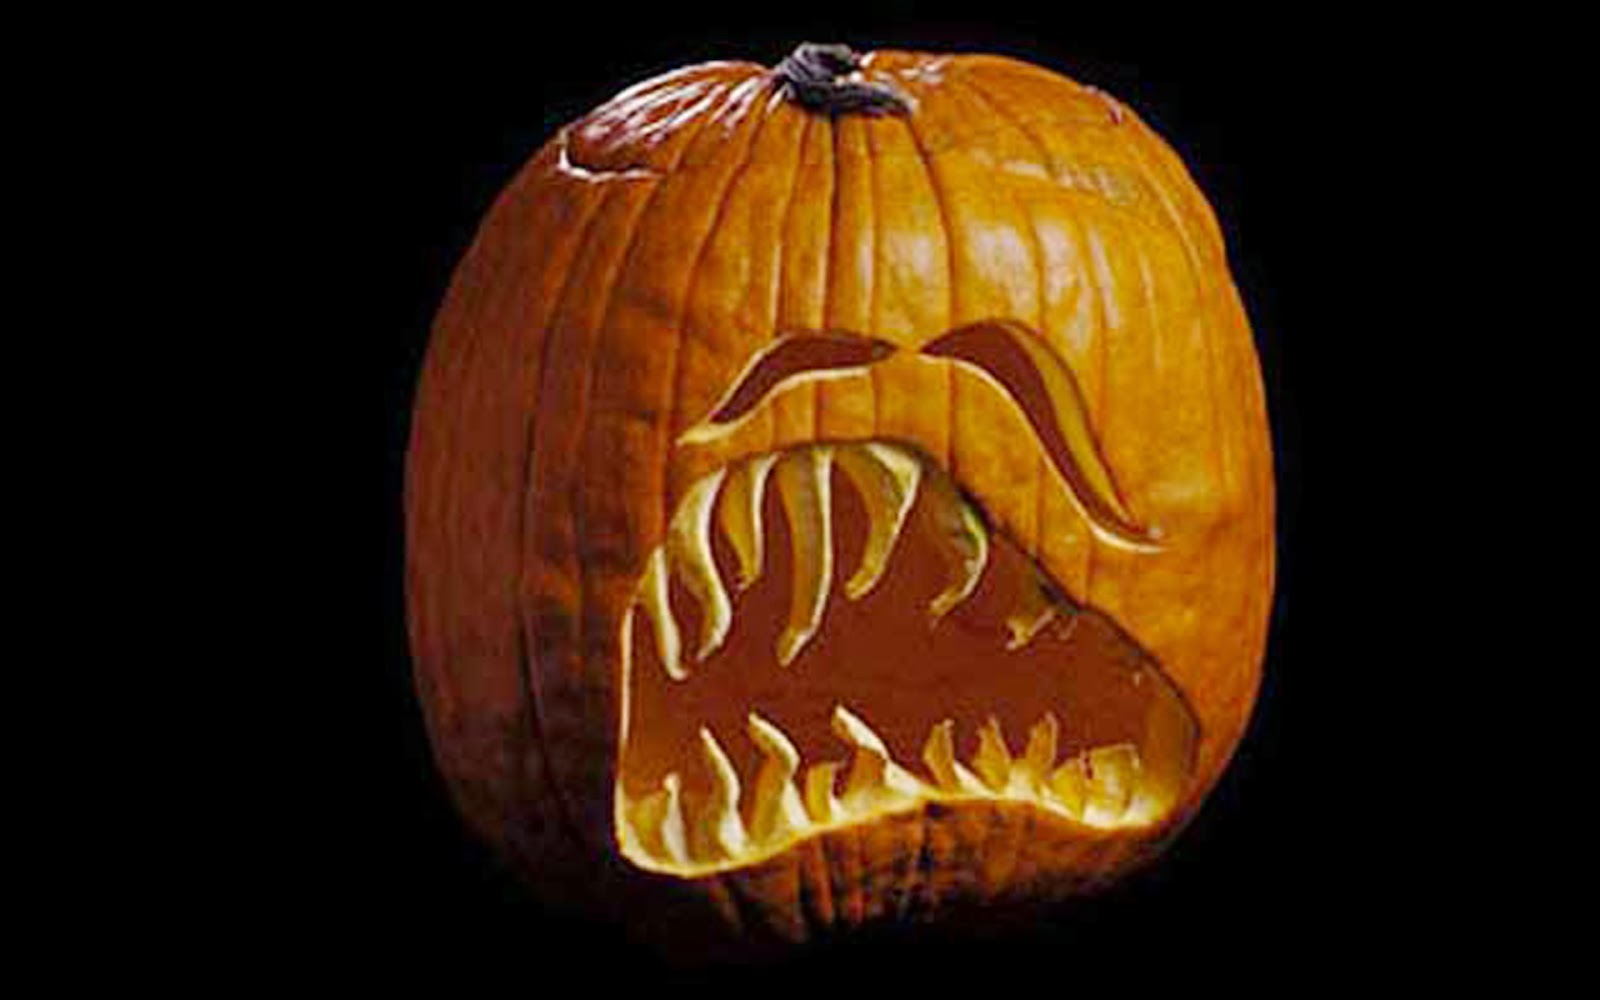 Pumpkin carving ideas for halloween 2014 Pumpkin carving designs photos